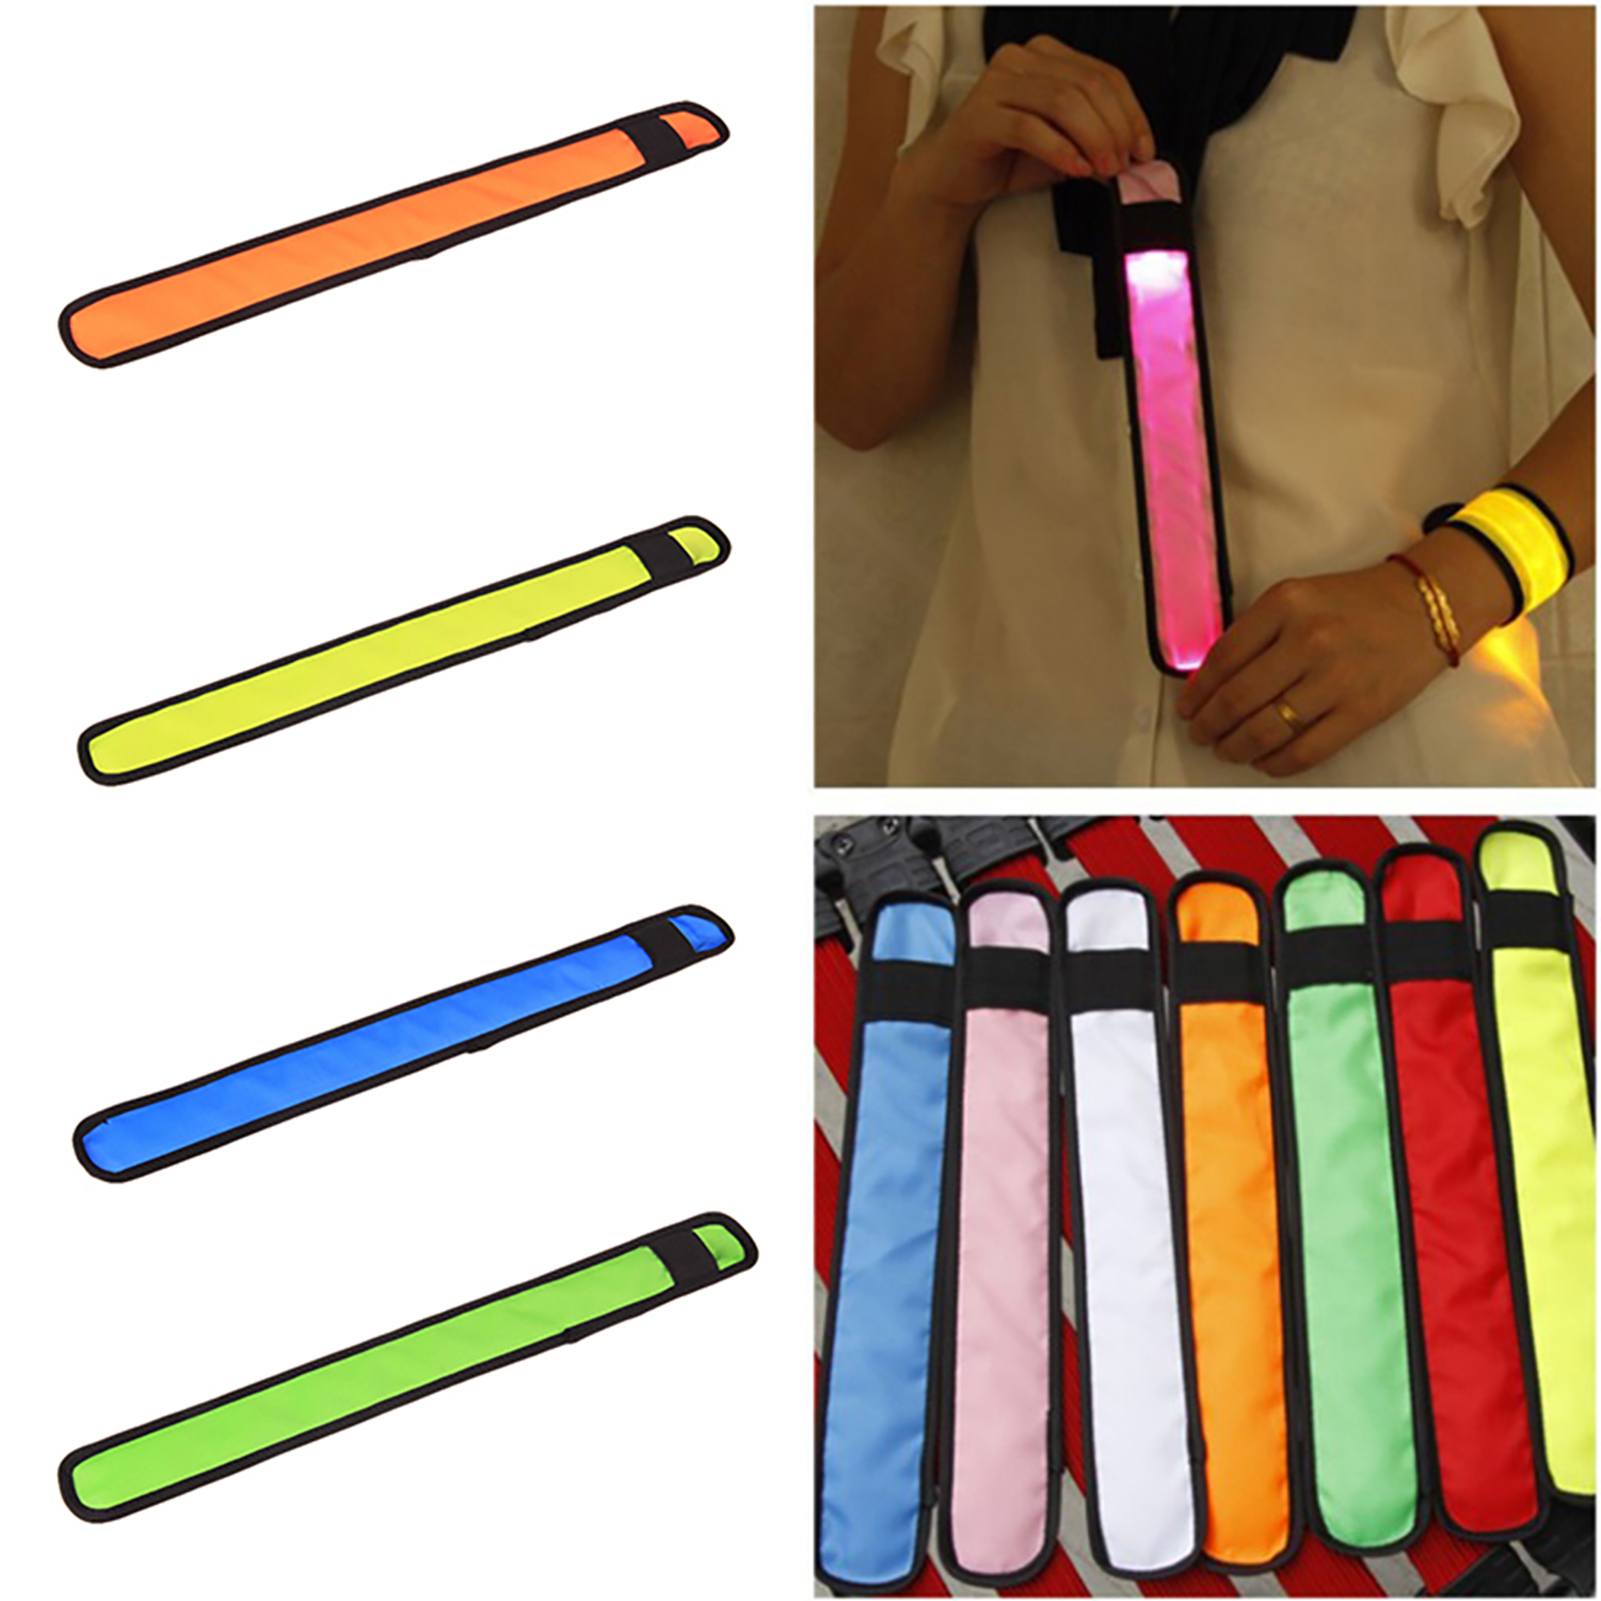 LED-Flashing-Light-Up-Glow-Bracelet-Wristband-Vocal-Concert-Party-Props-Gift-HOT thumbnail 6